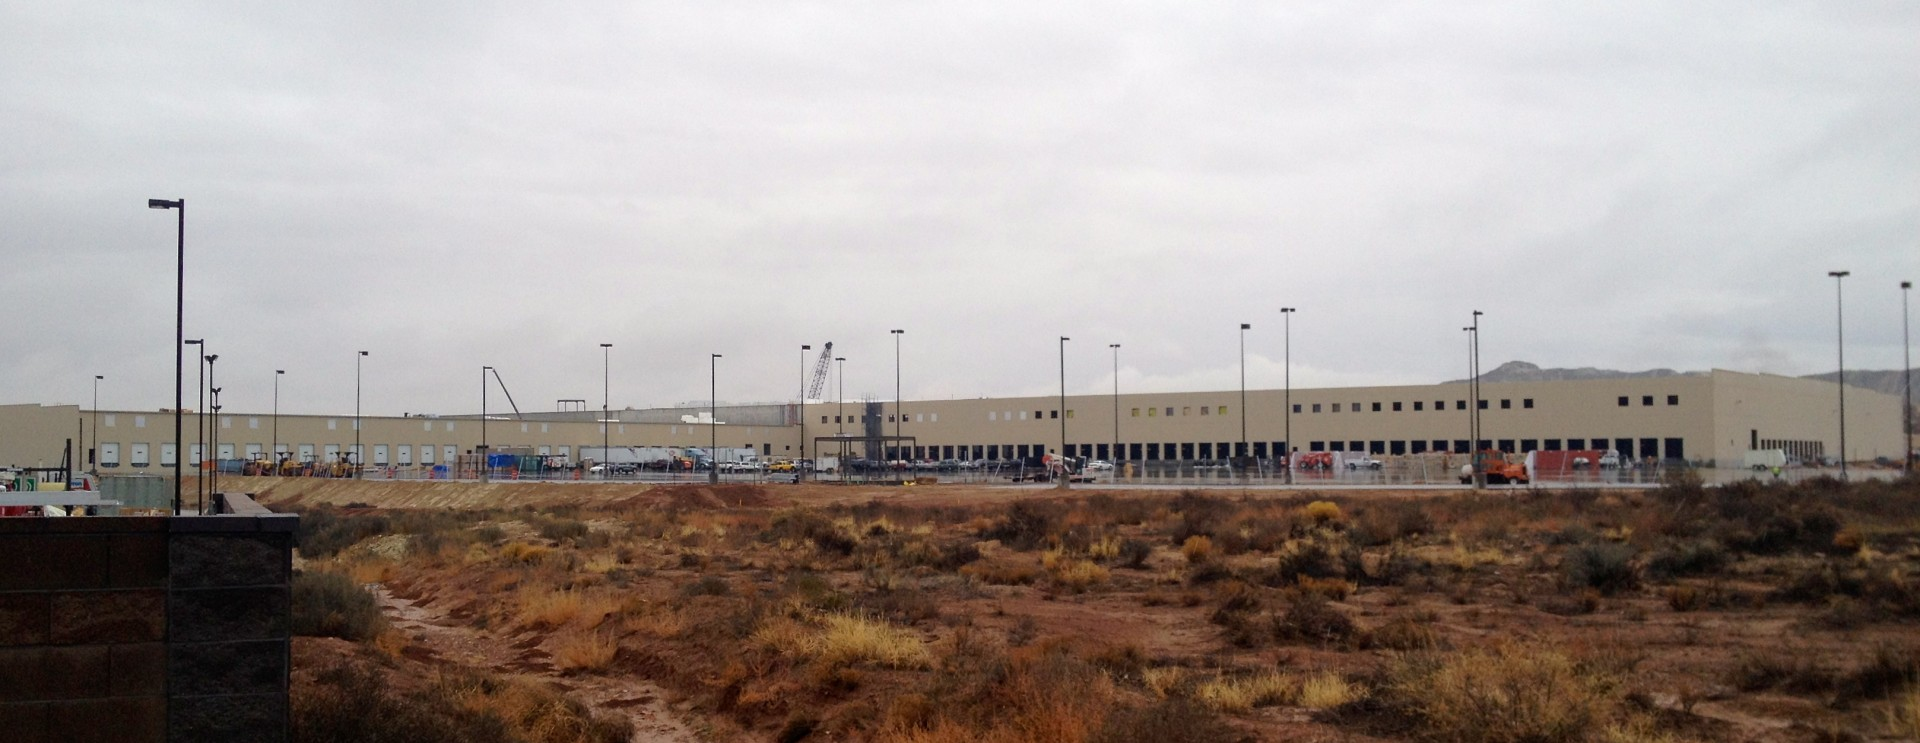 Family Dollar Distribution Center St. George, Utah,